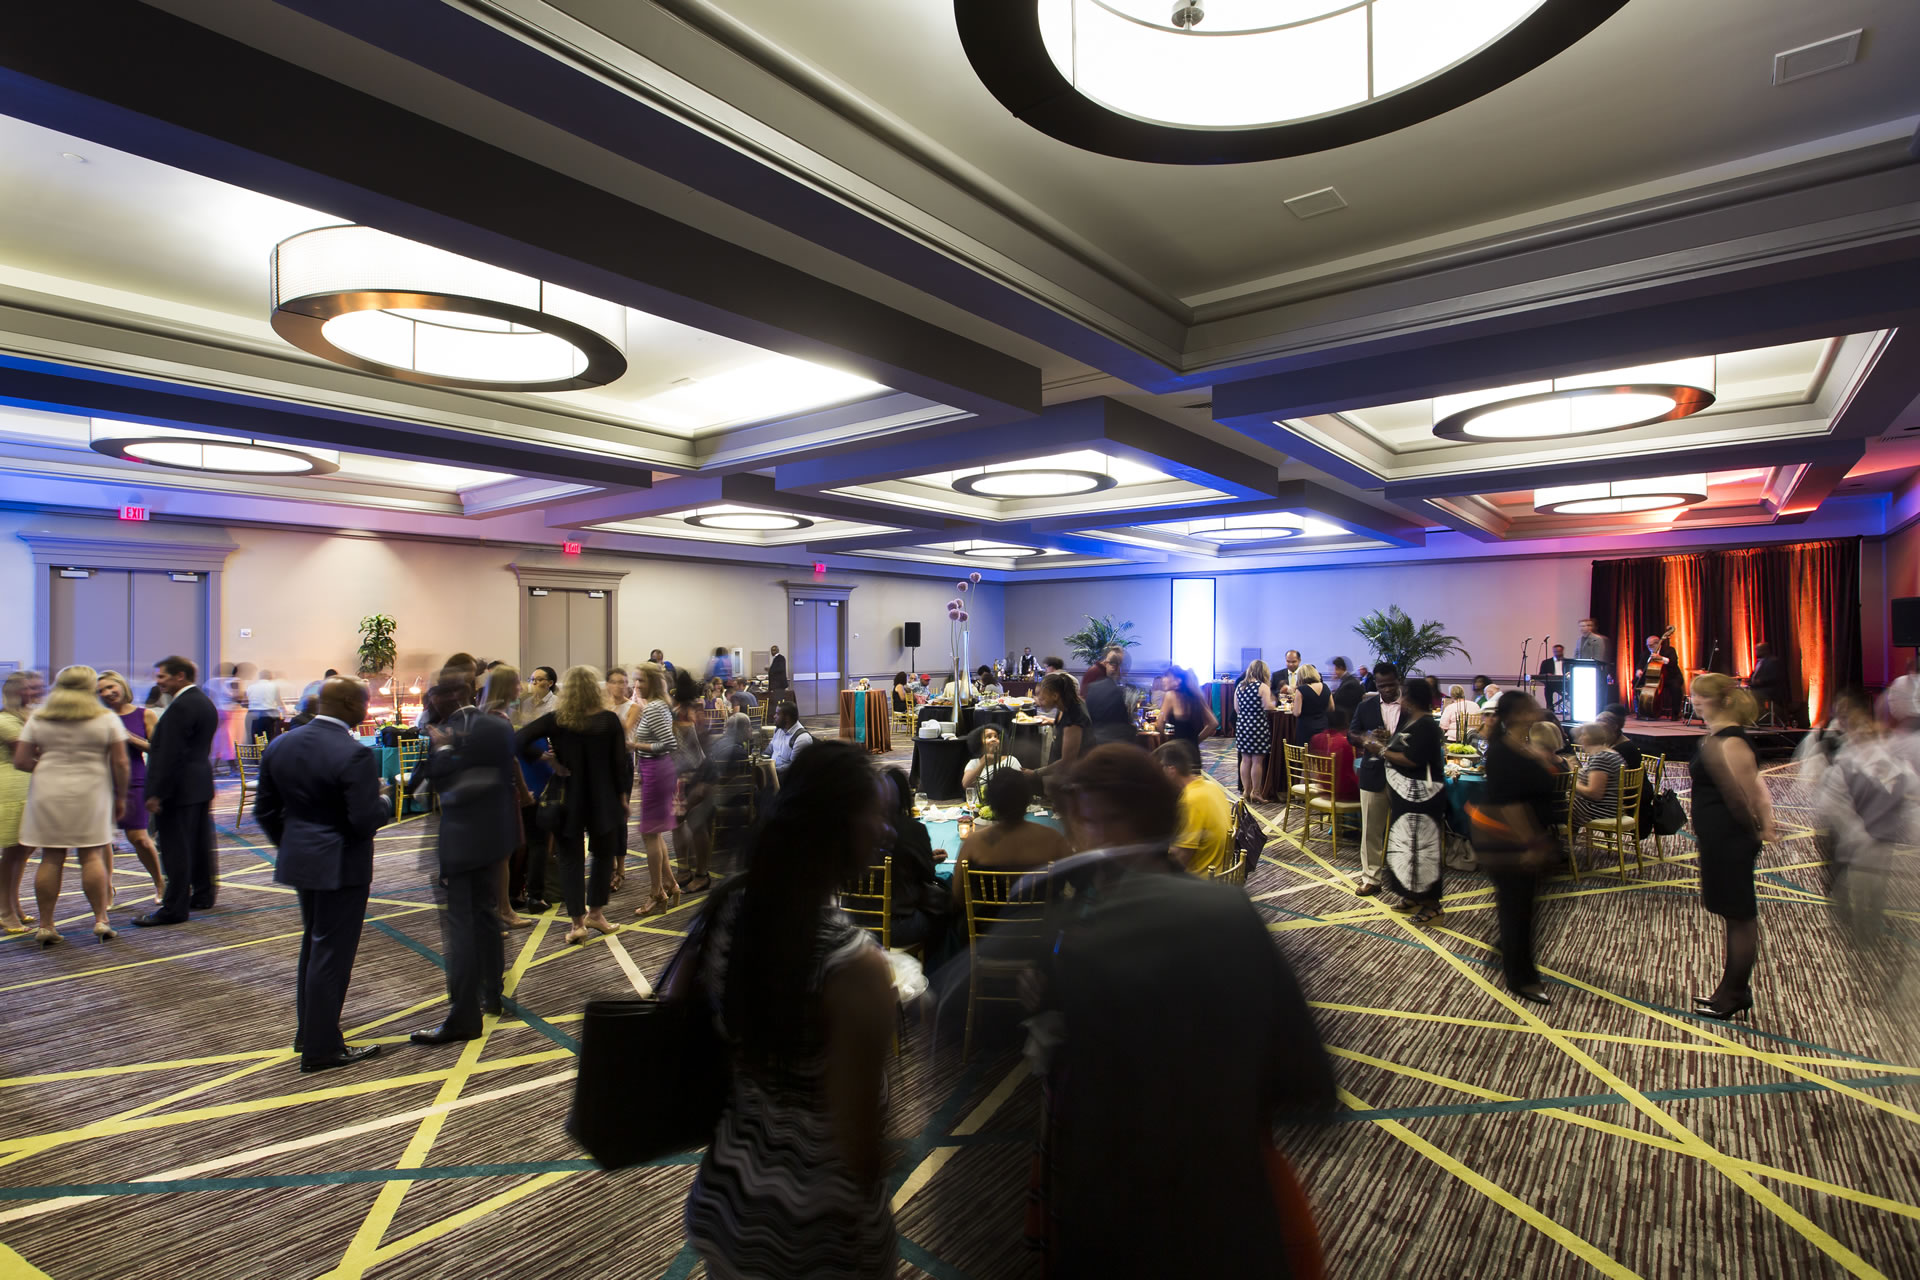 And event taking place in Crowne Plaza Atlanta Midtown.